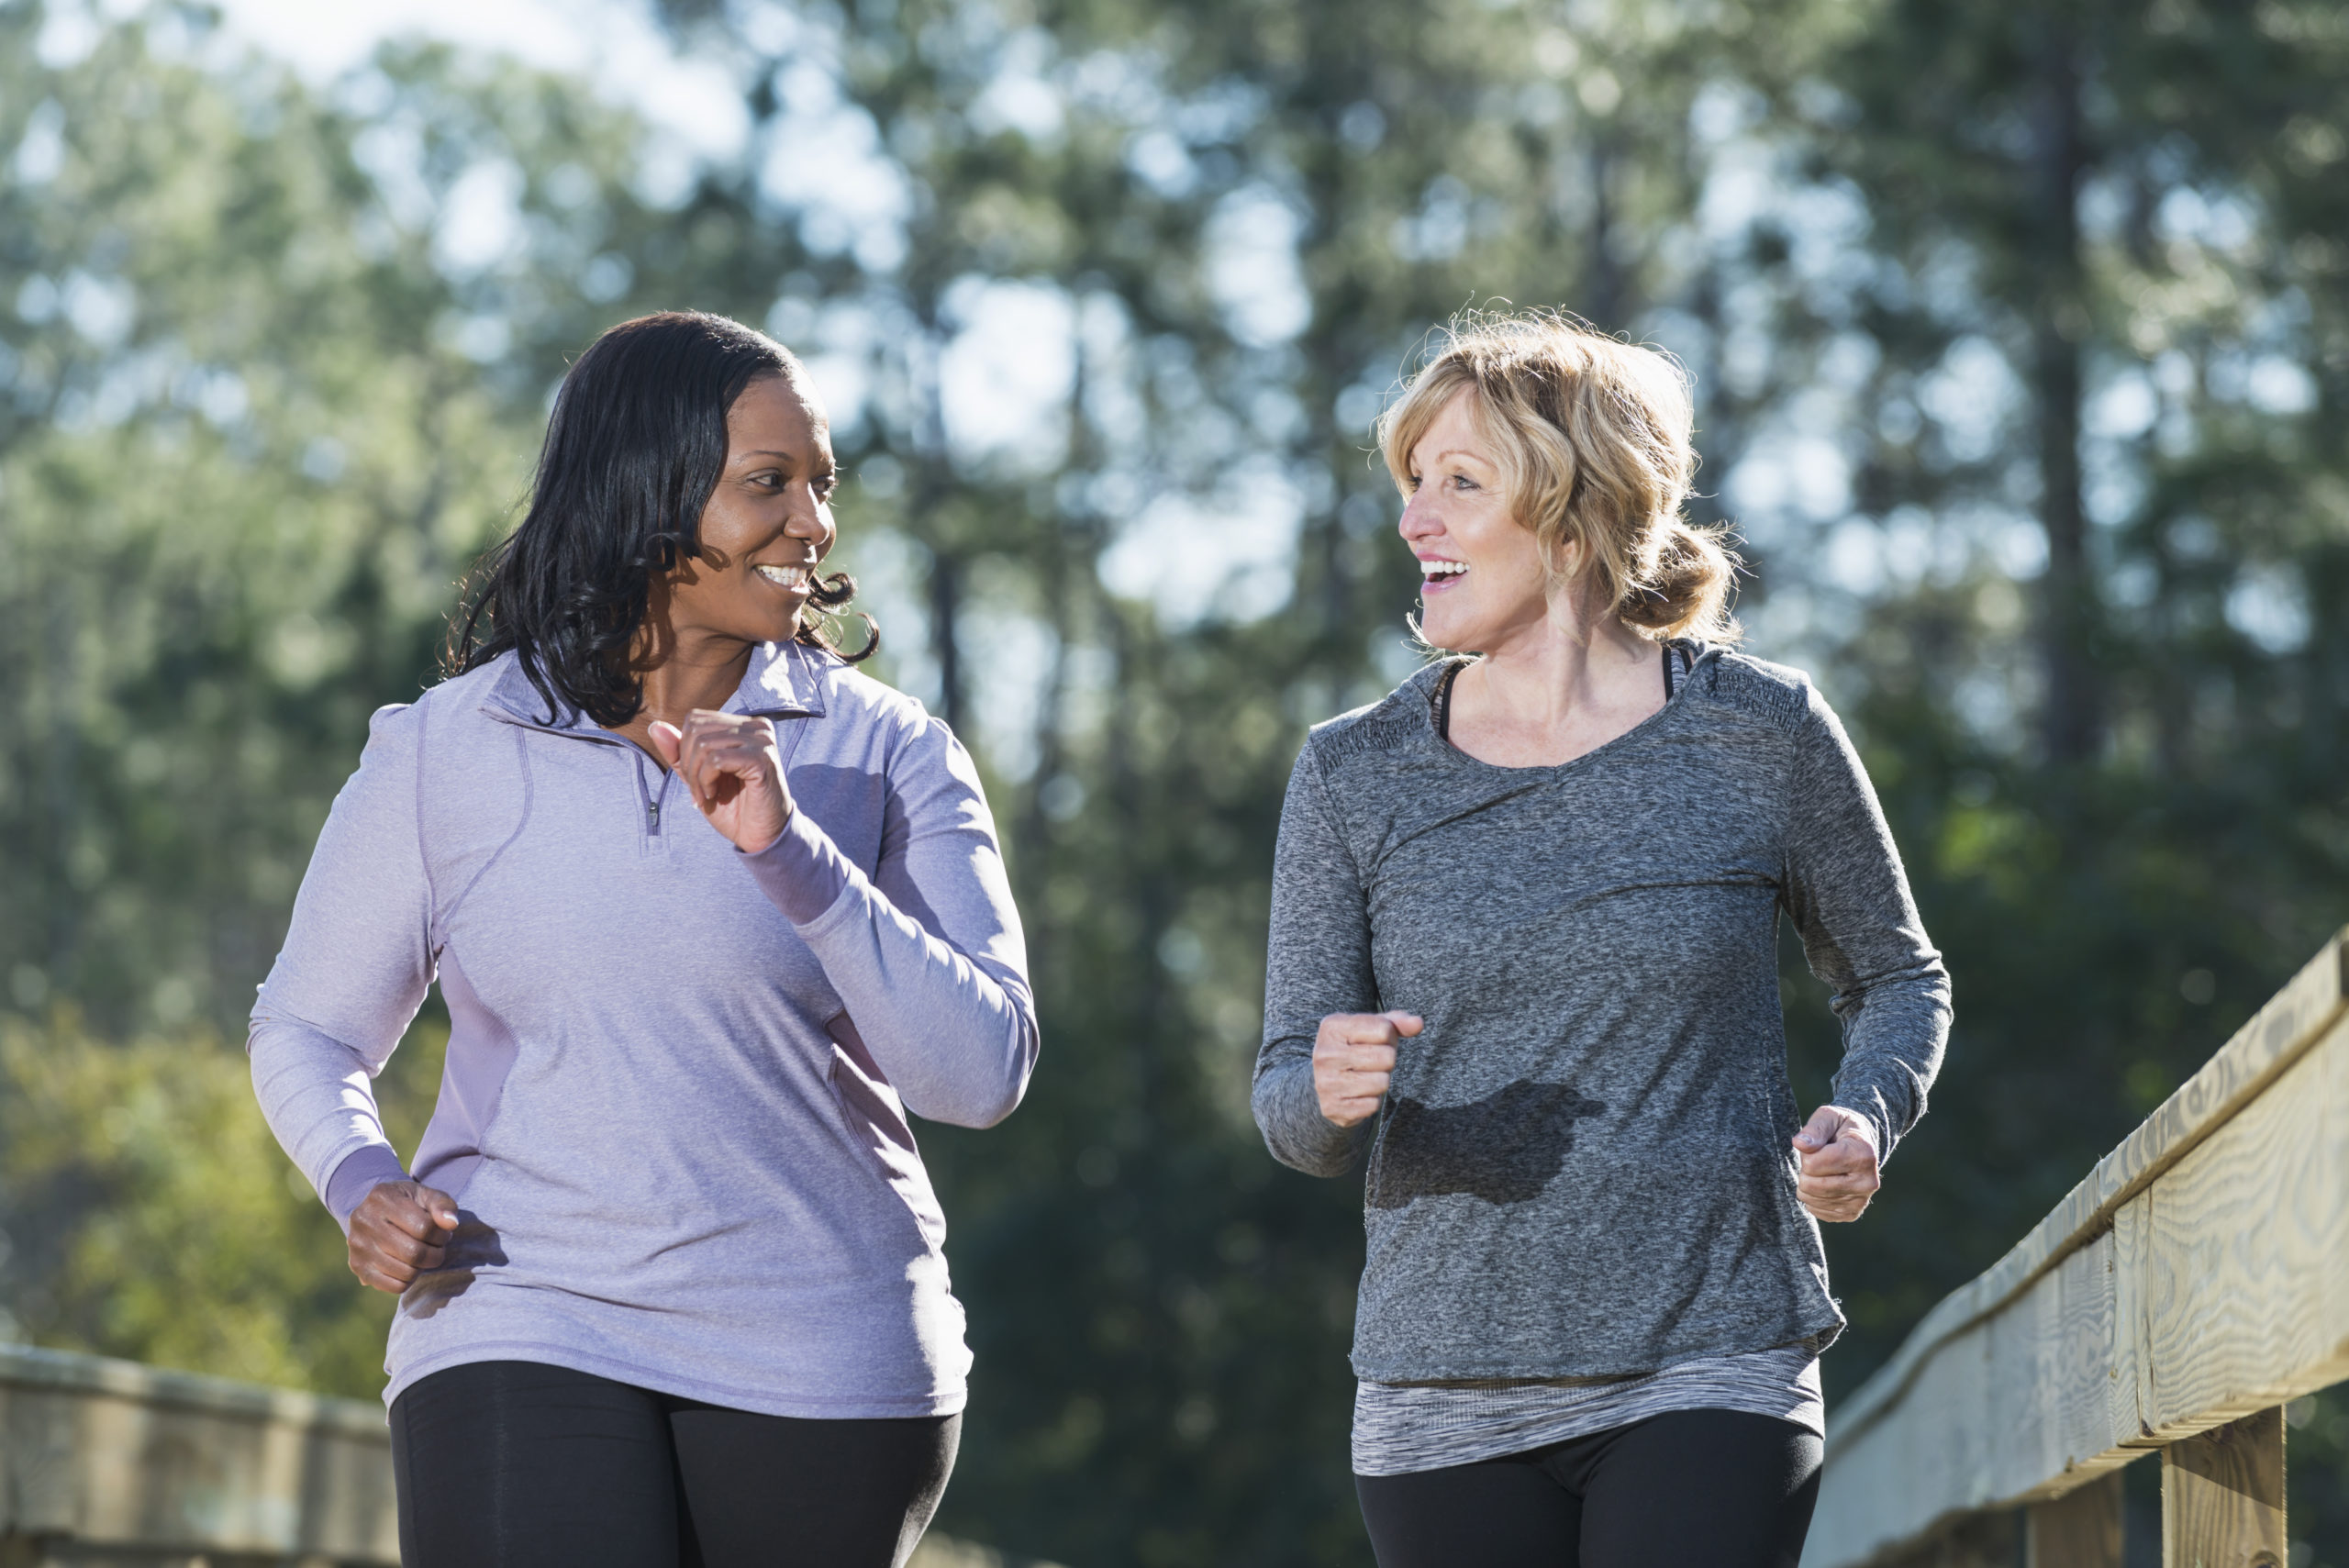 Mature women (40s, 60s) jogging in park.